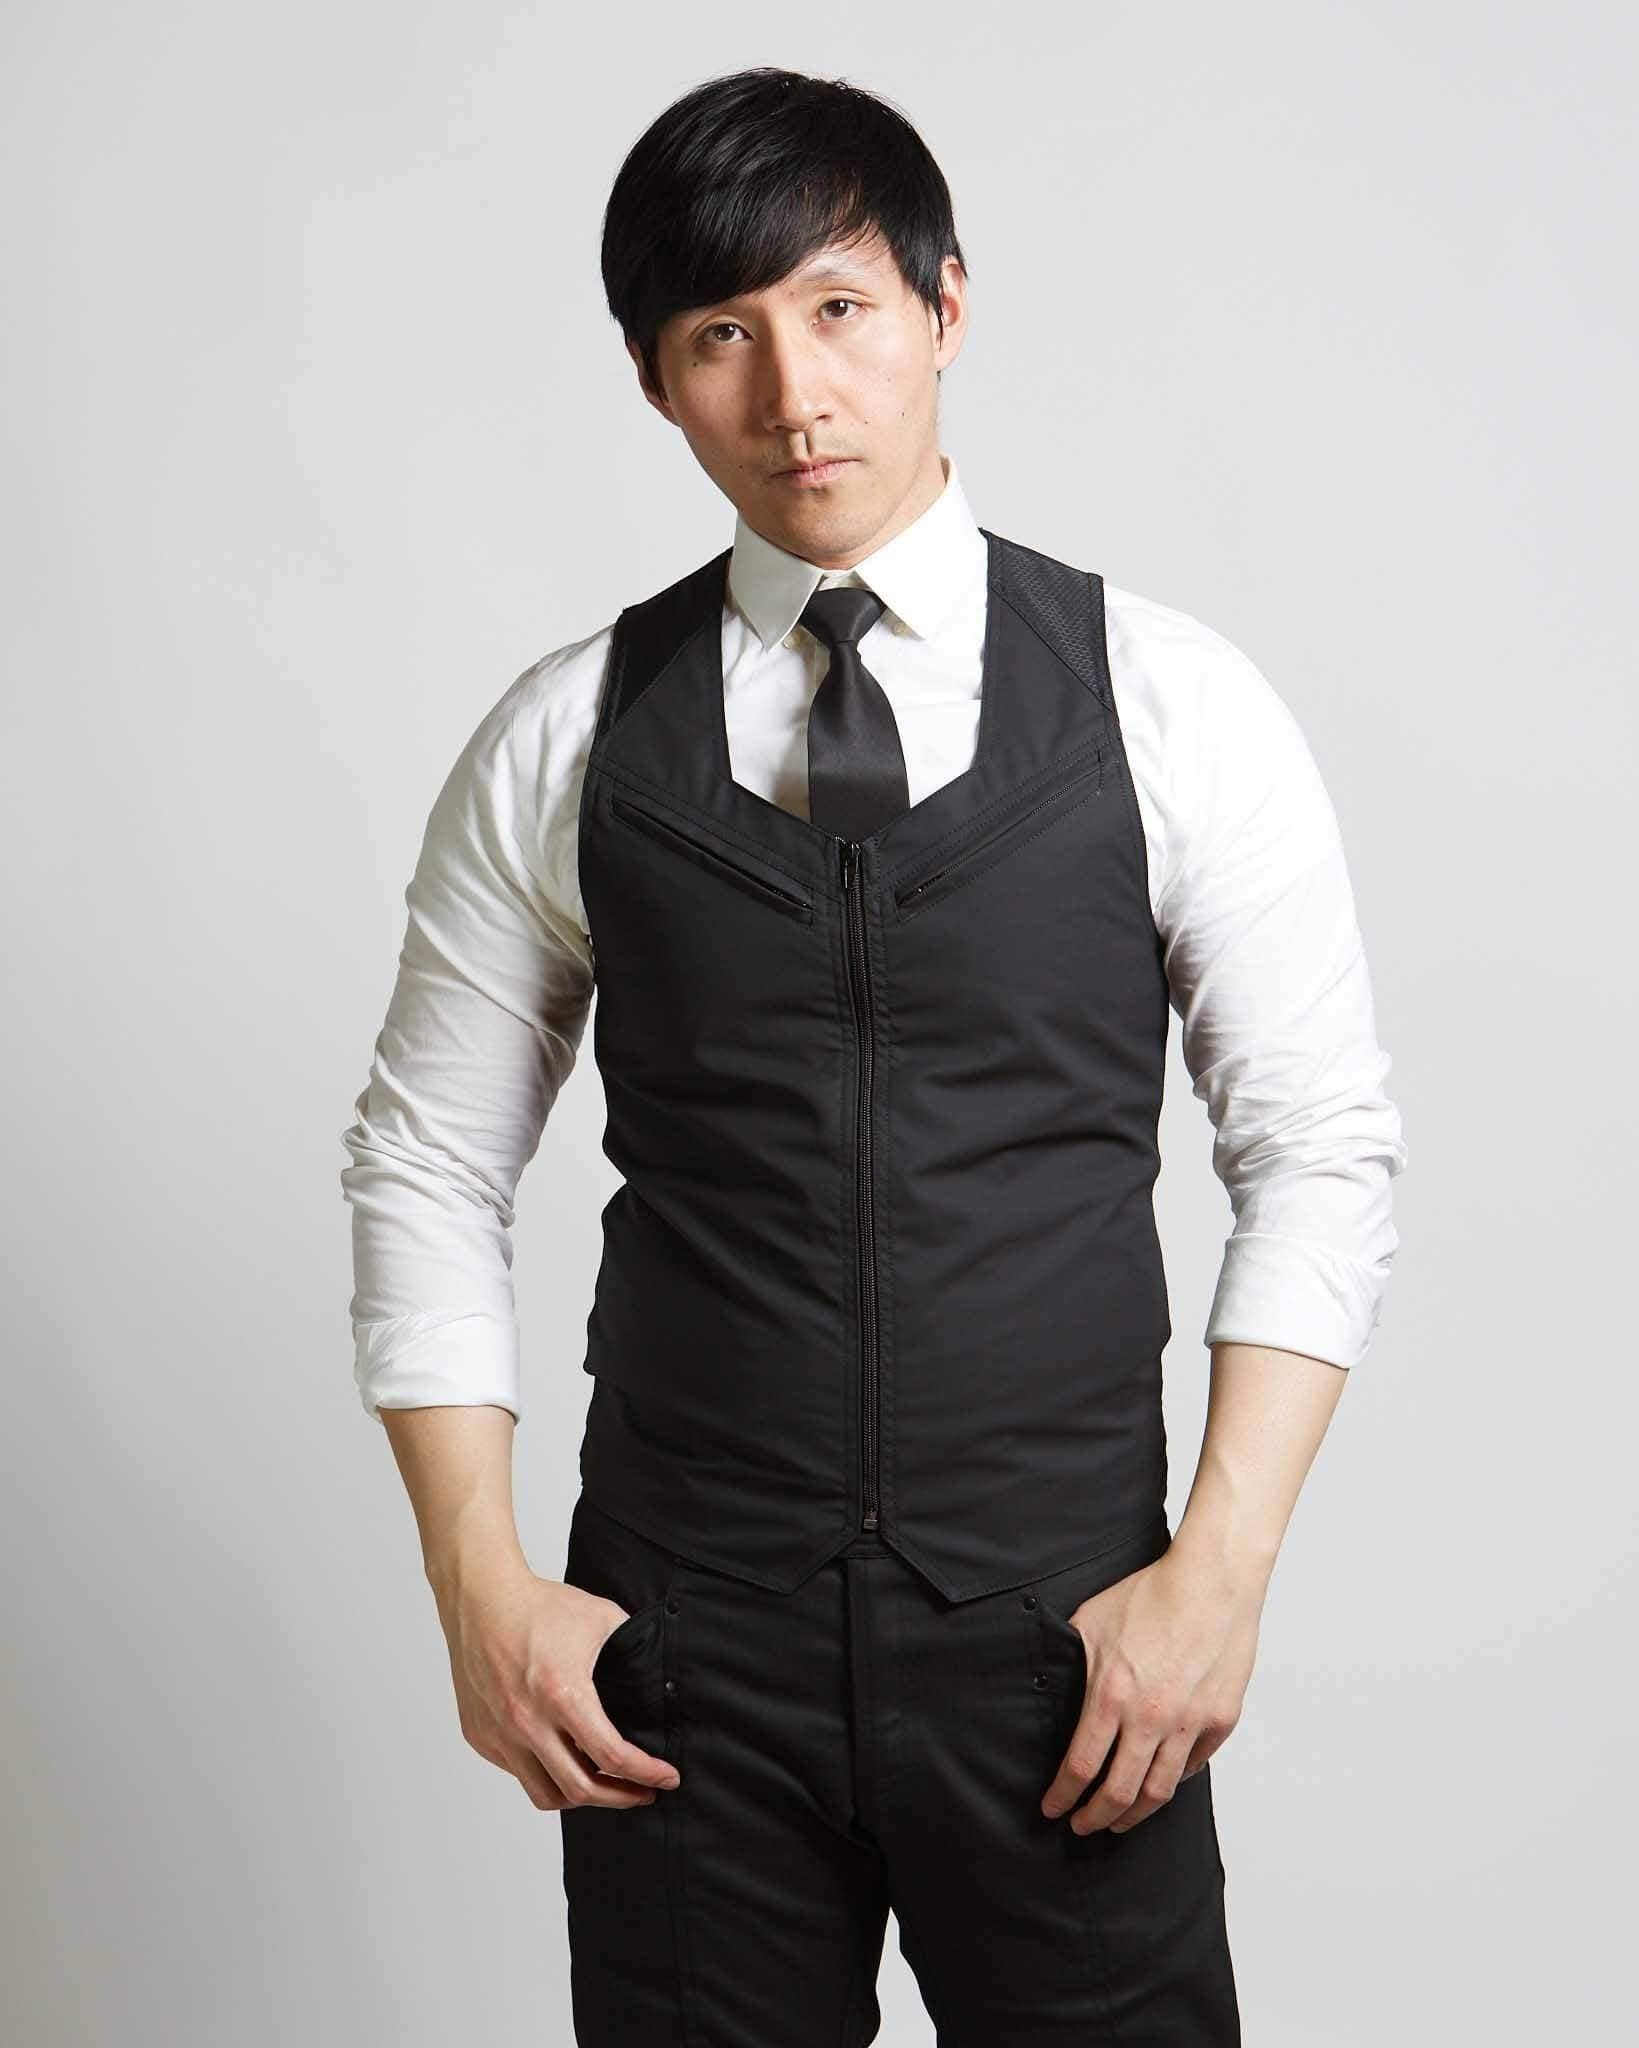 zippered formal mens vest in modern style